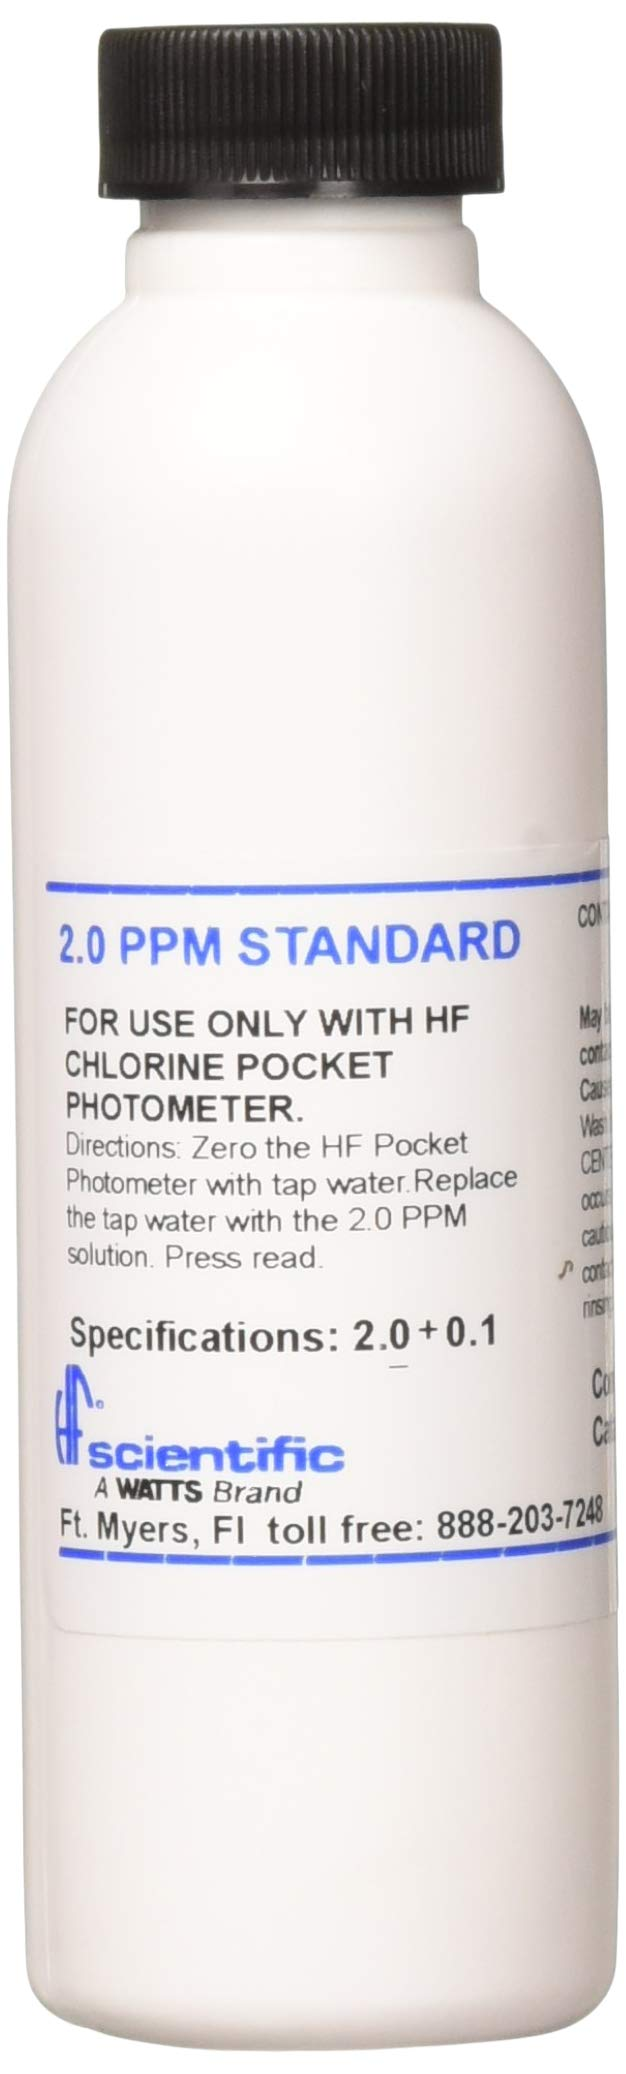 HF Scientific 10451A 2.0PPM Reference Standard Solution for Chlorine Pocket Photometer, 118 mL by HF Scientific